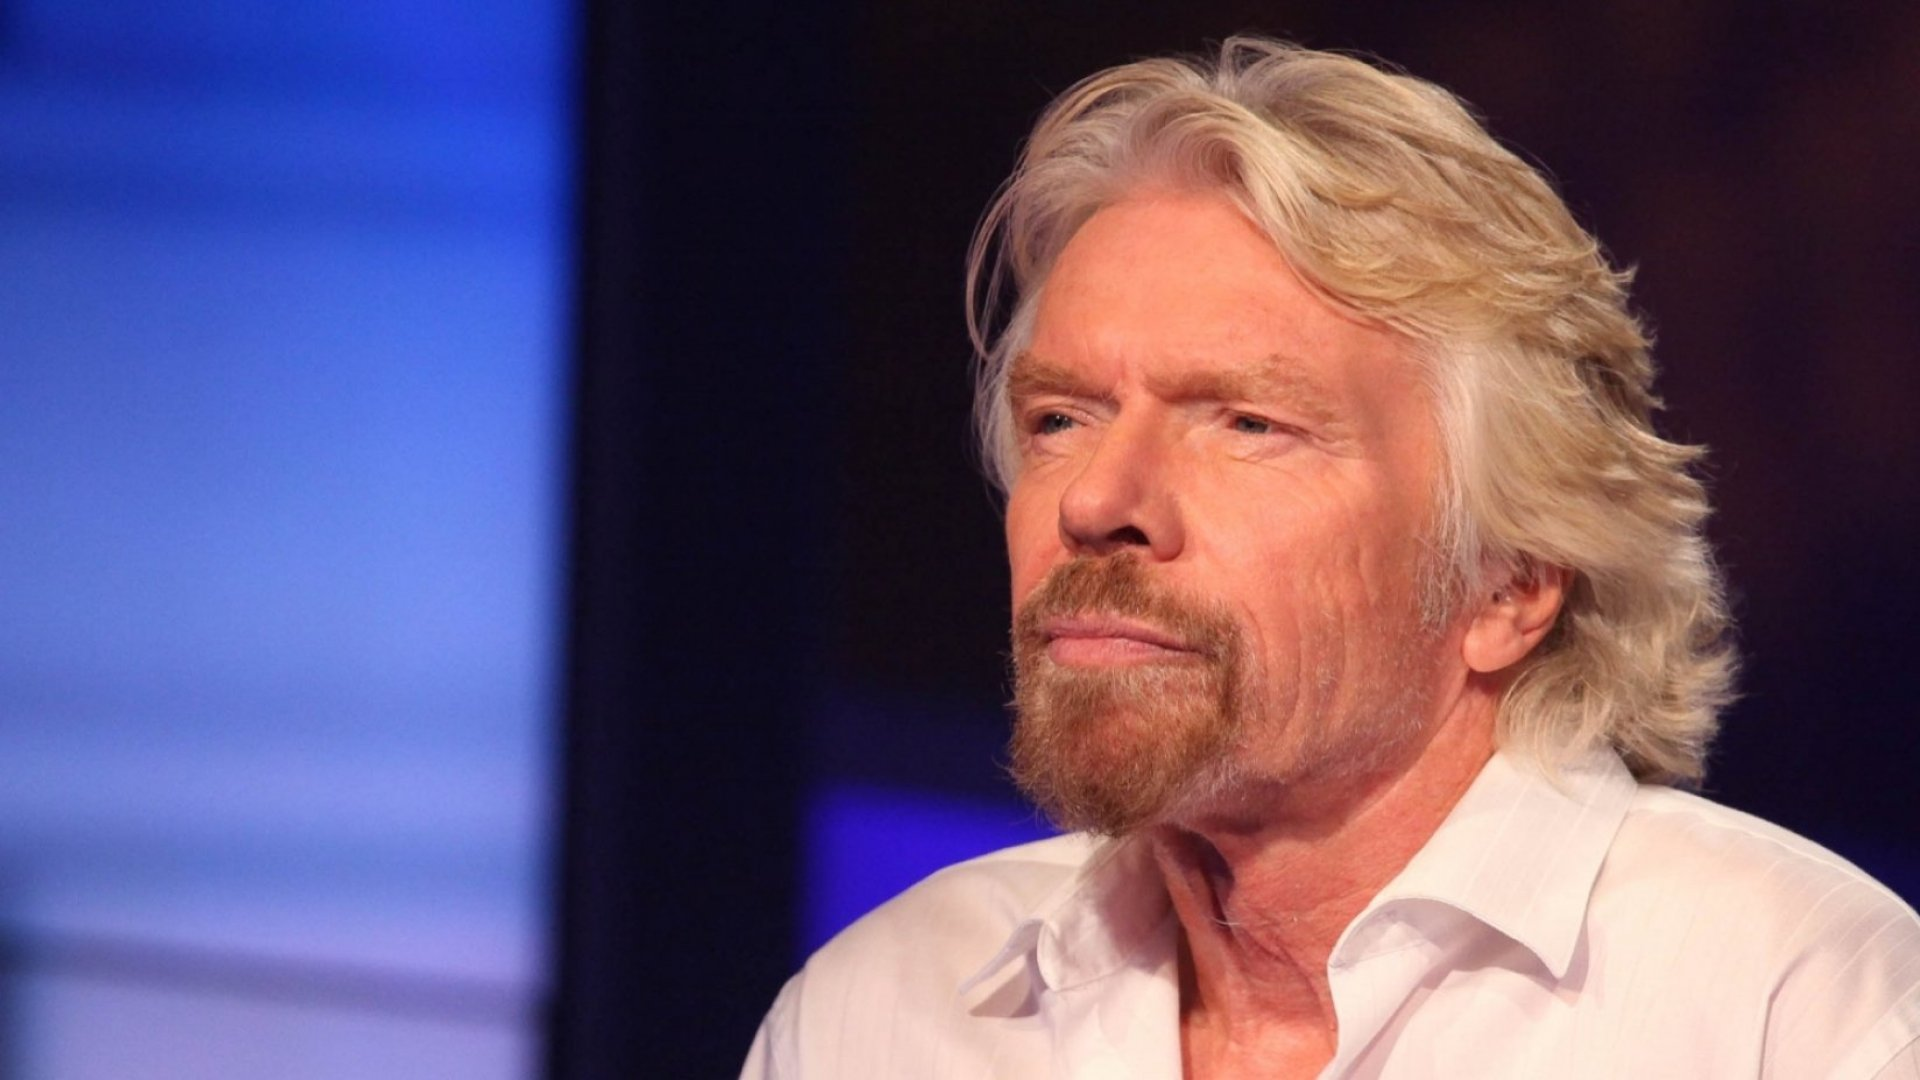 Richard Branson Calls Donald Trump 'Naive' for Leaving Paris Climate Accord